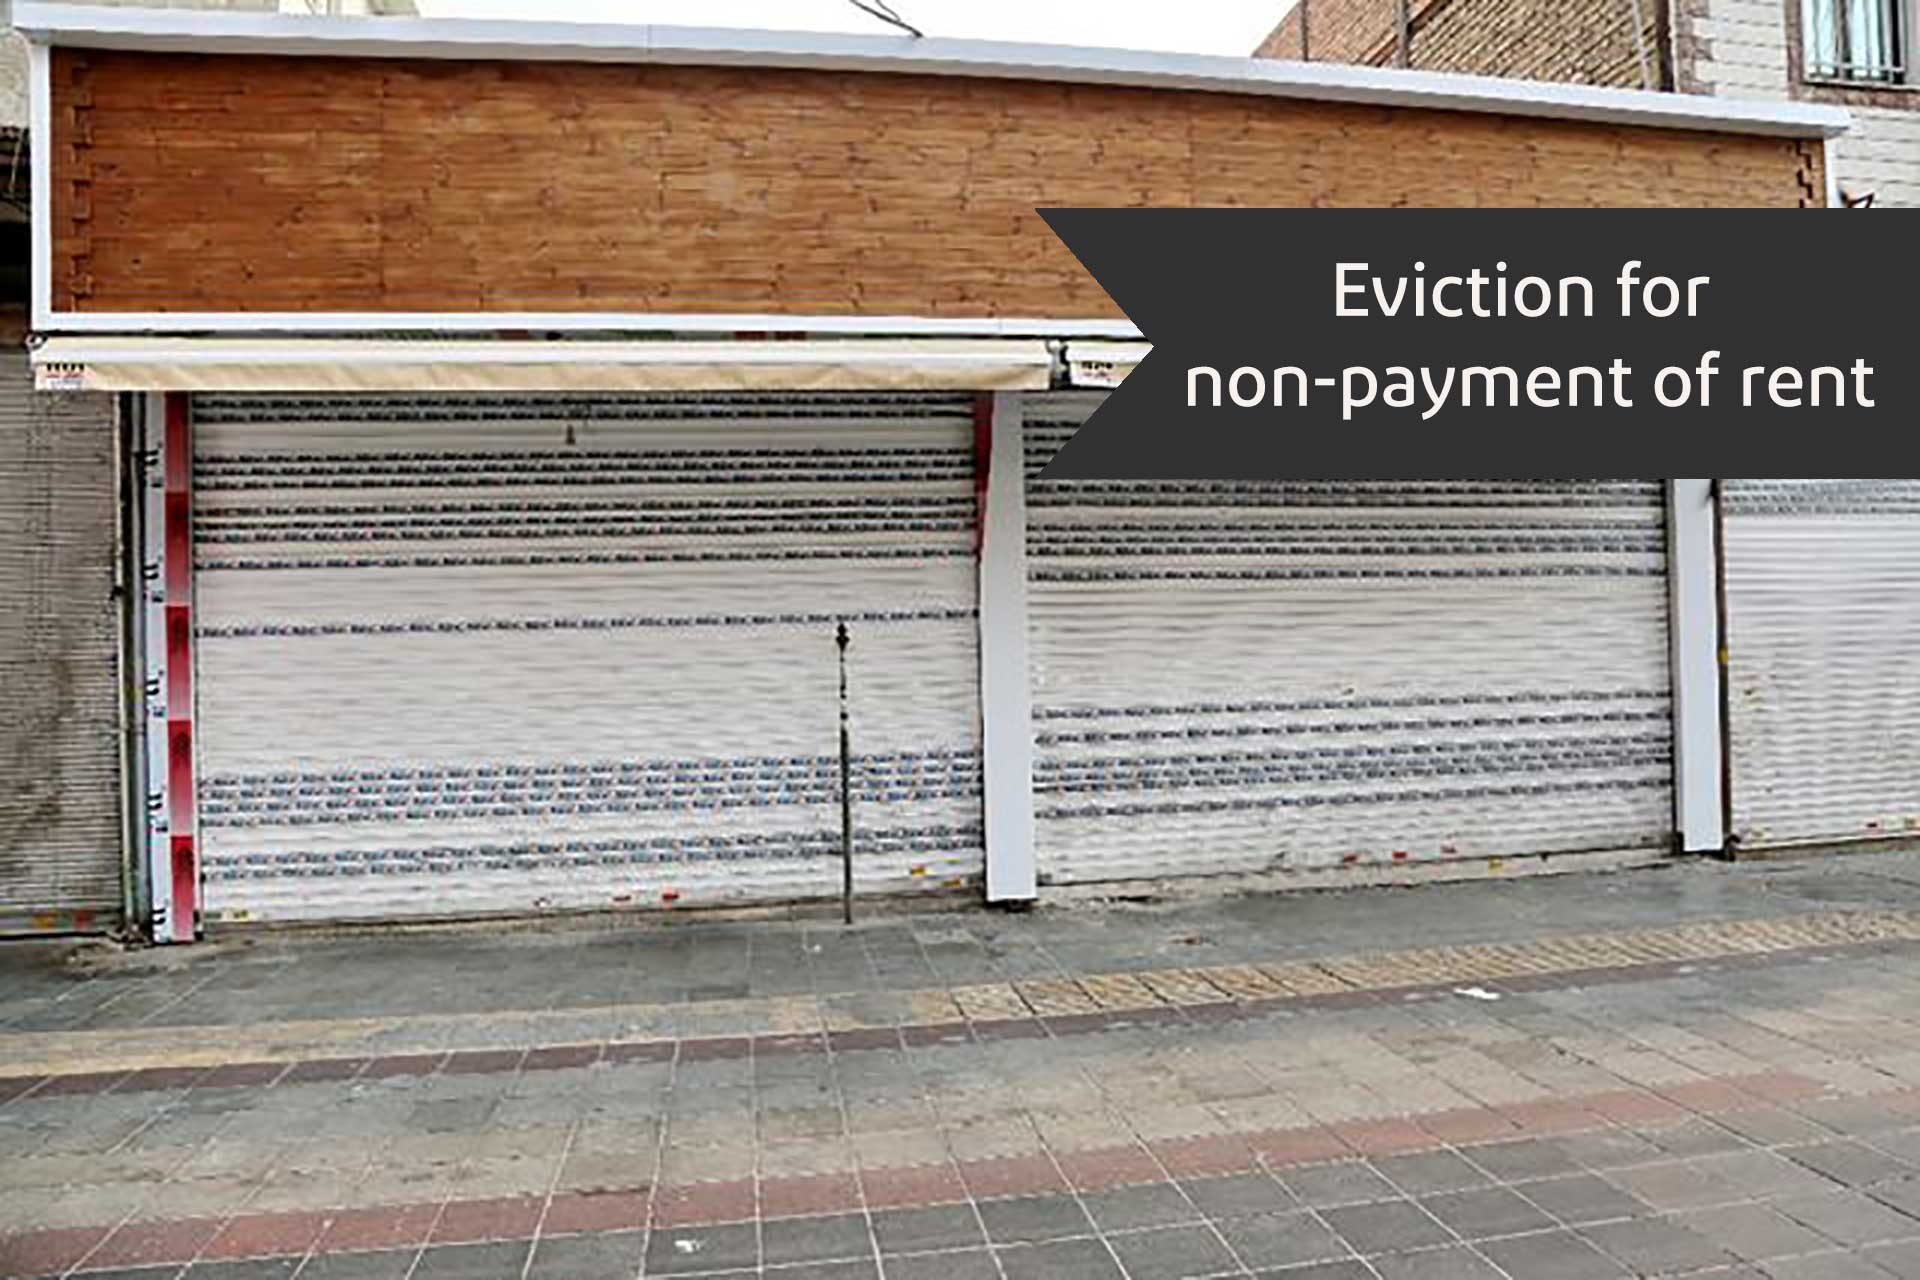 Eviction for non-payment of rent